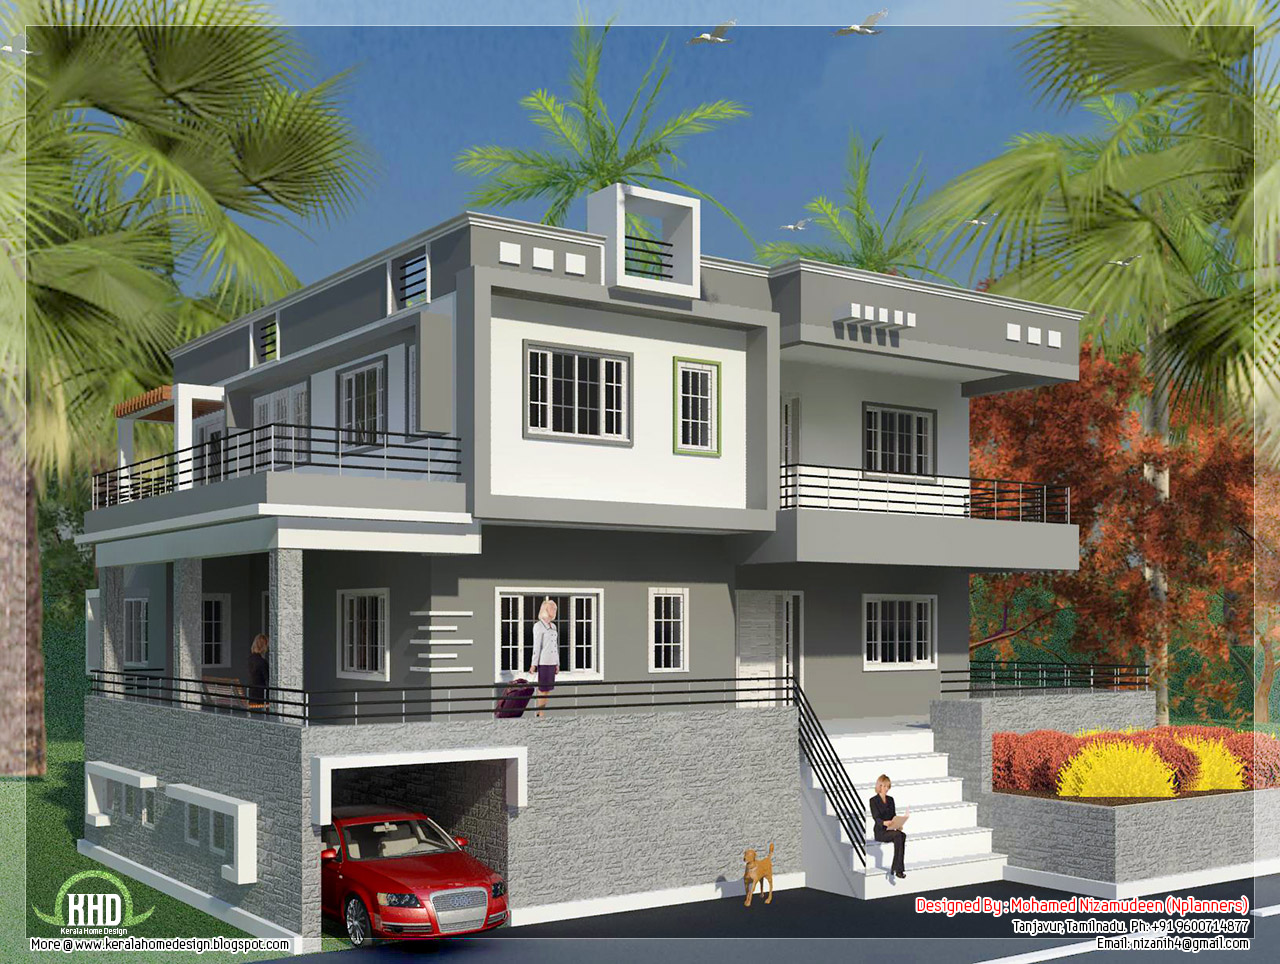 North indian style minimalist house exterior design for Indian home front design